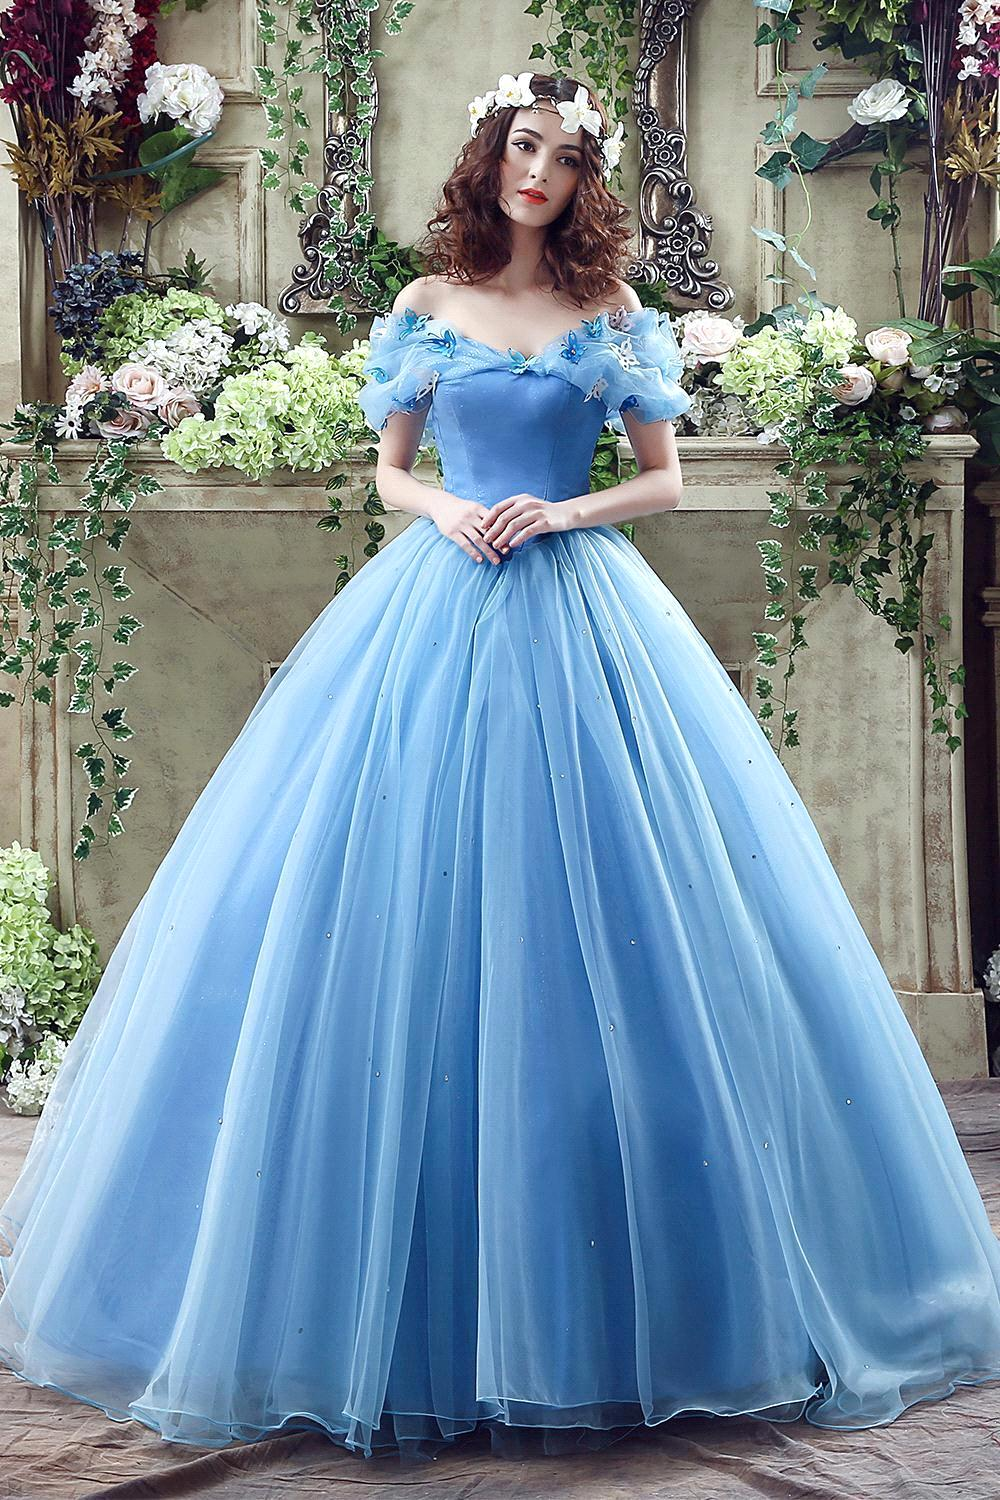 Nice Gown Gemach Brooklyn Vignette - Images for wedding gown ideas ...